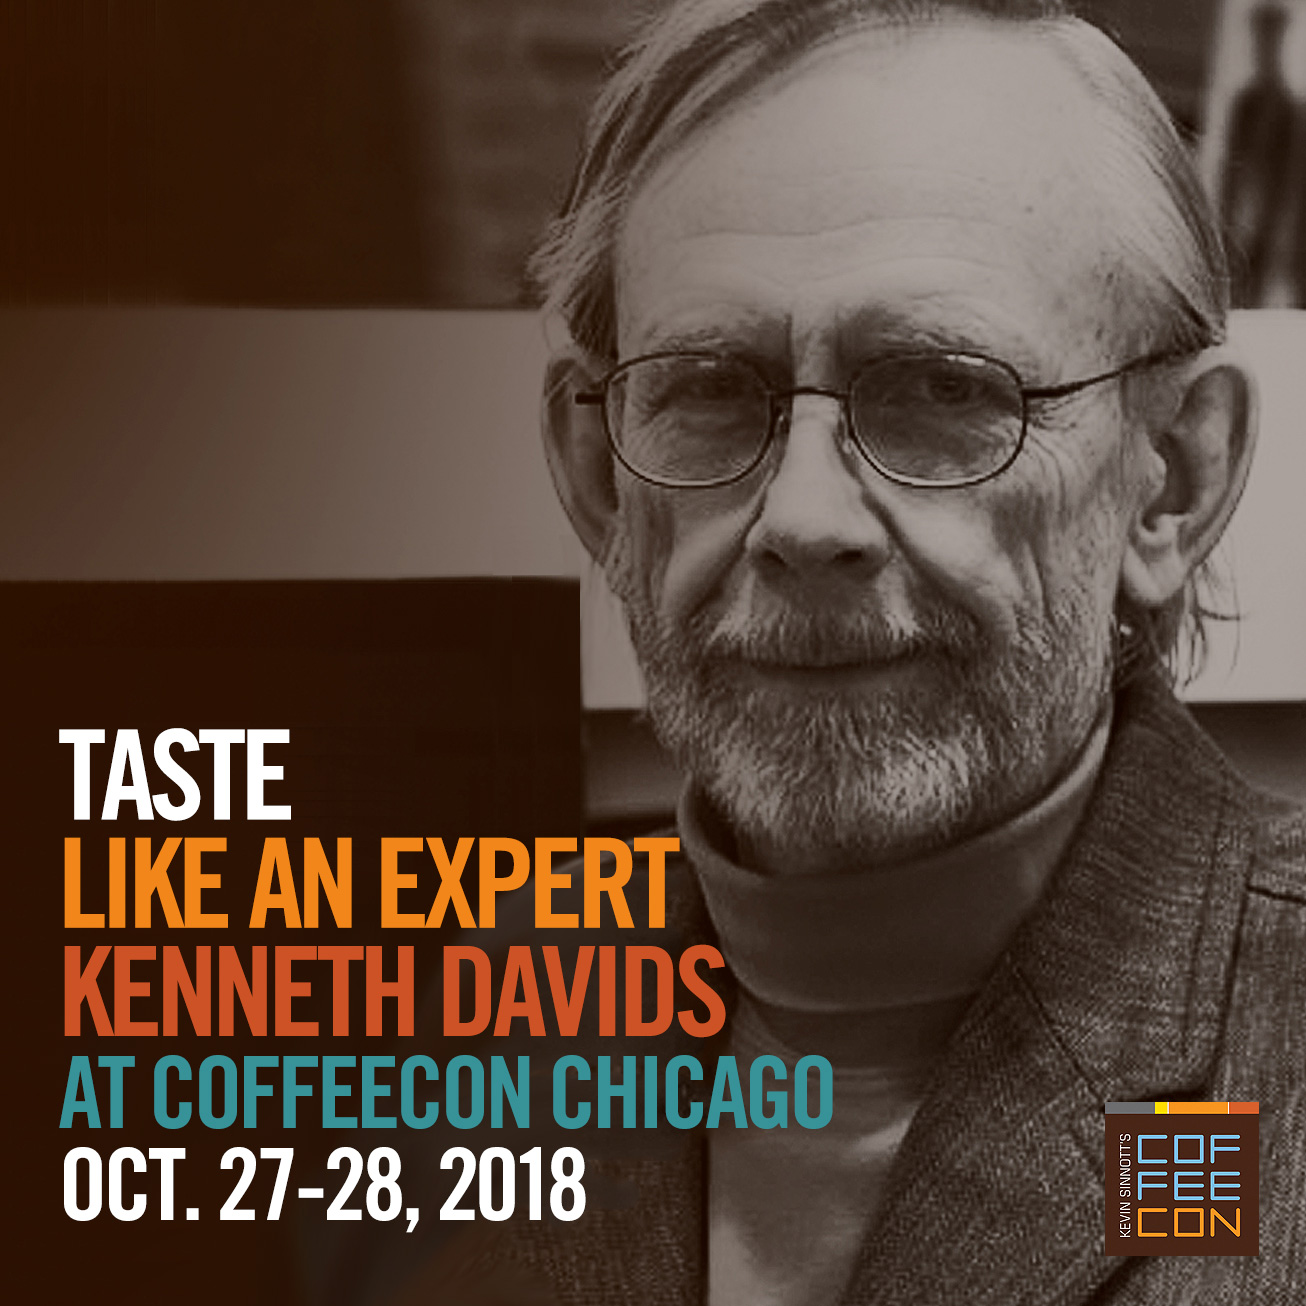 Taste Like An Expert at CoffeeConChicago 2018